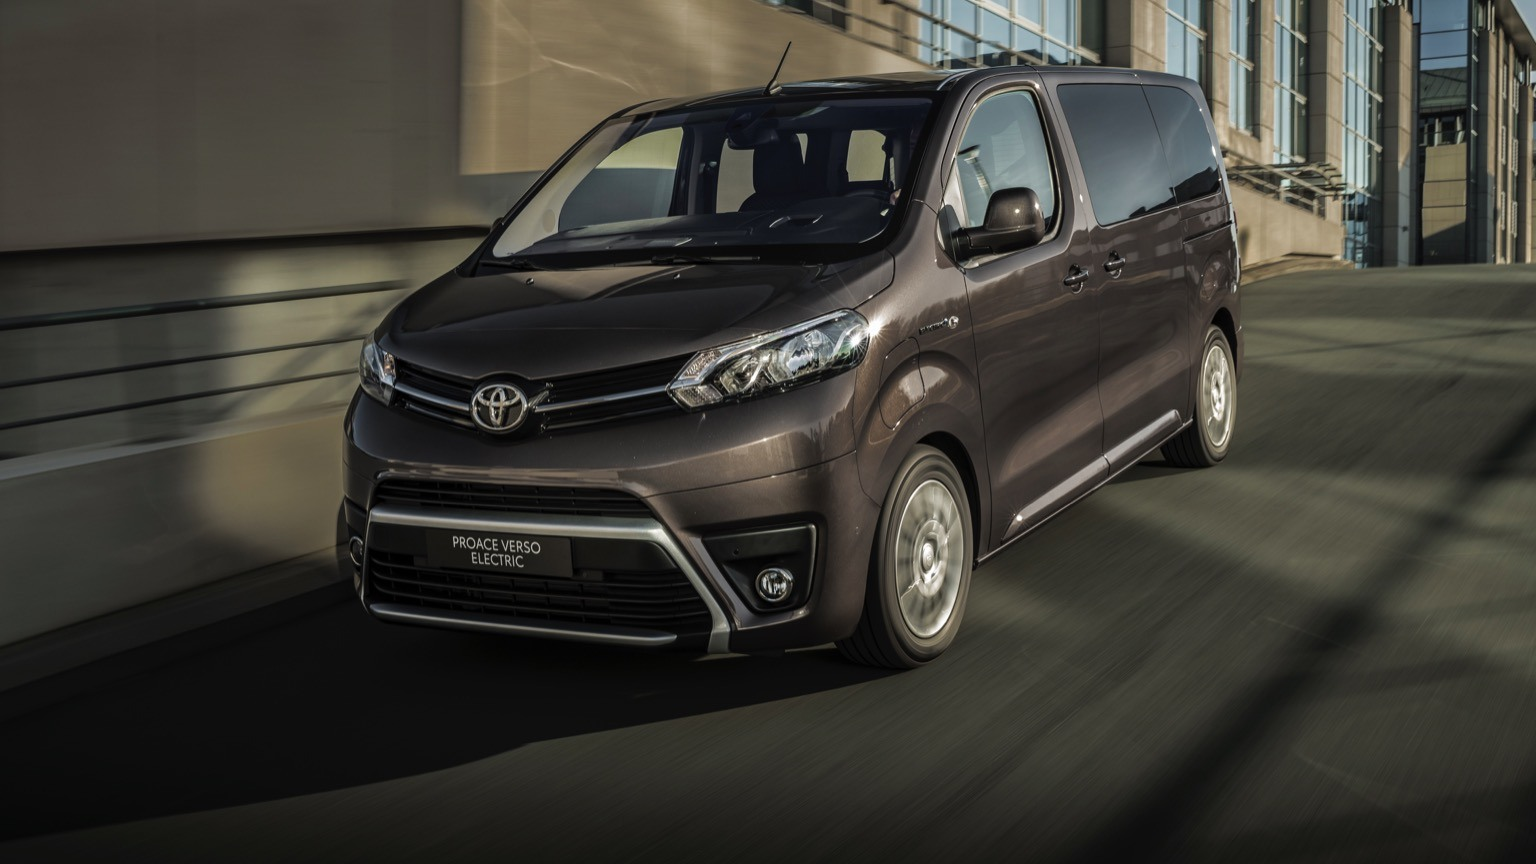 Toyota PROACE Verso M 75 kWh